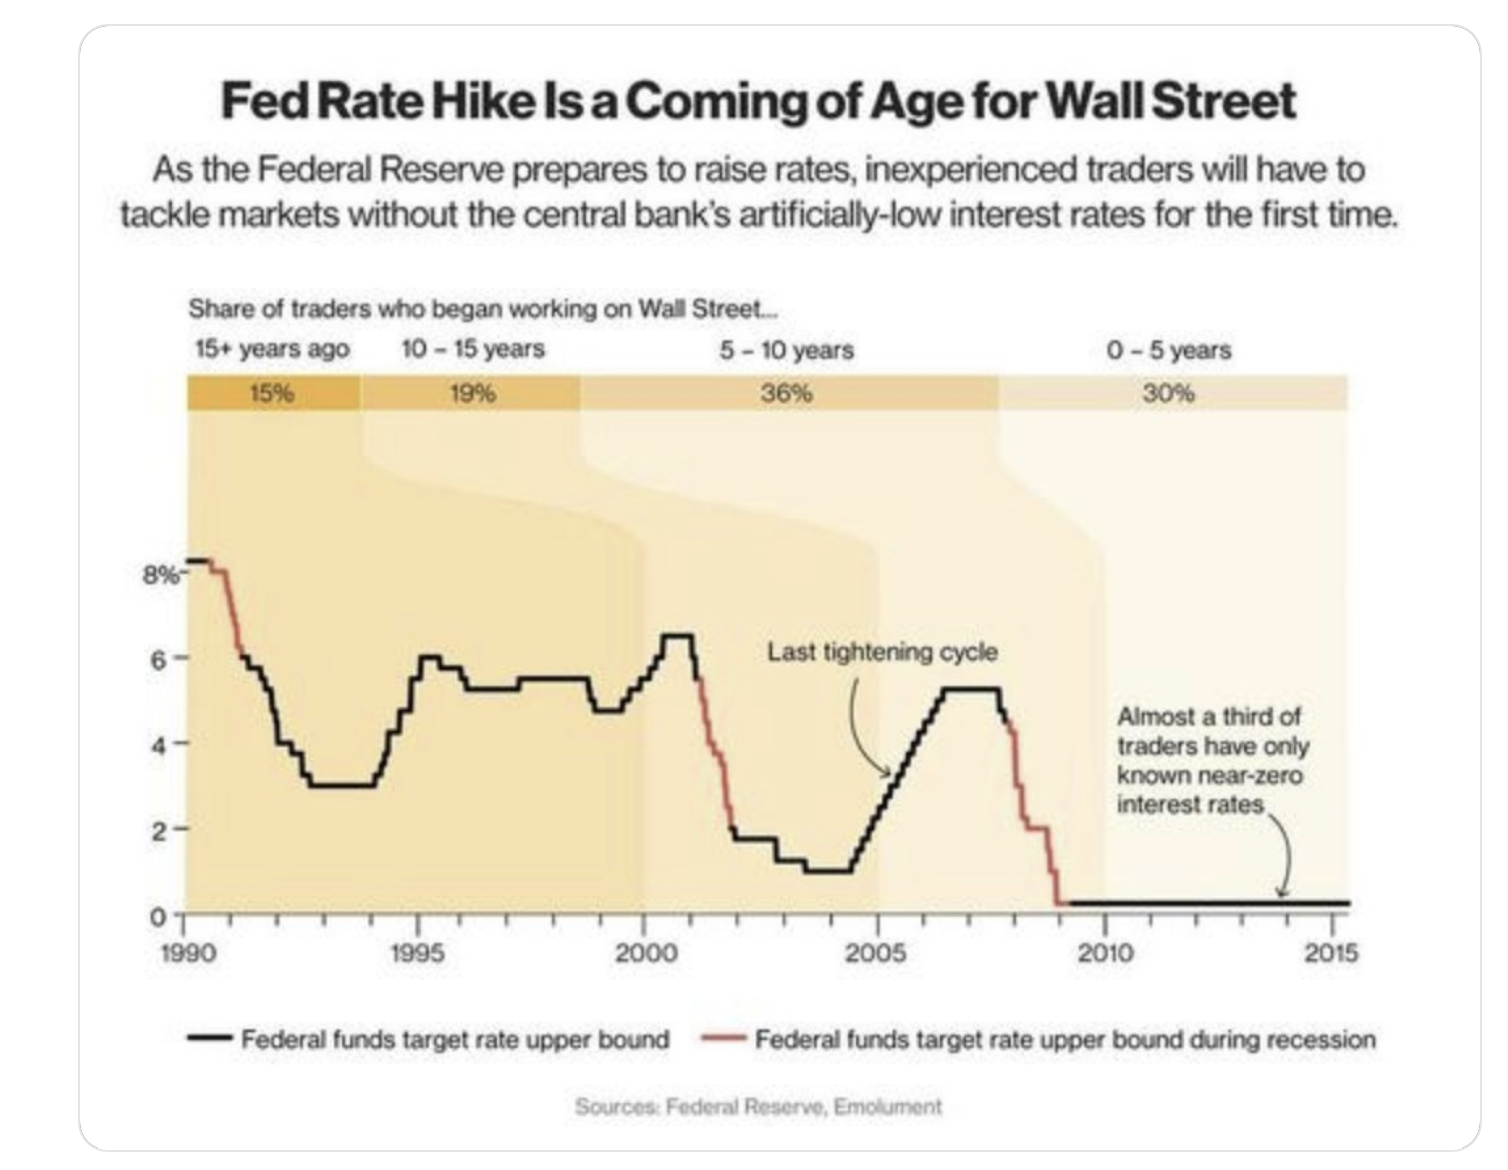 Fed Rate Hike is a Coming of Age for Wall Street